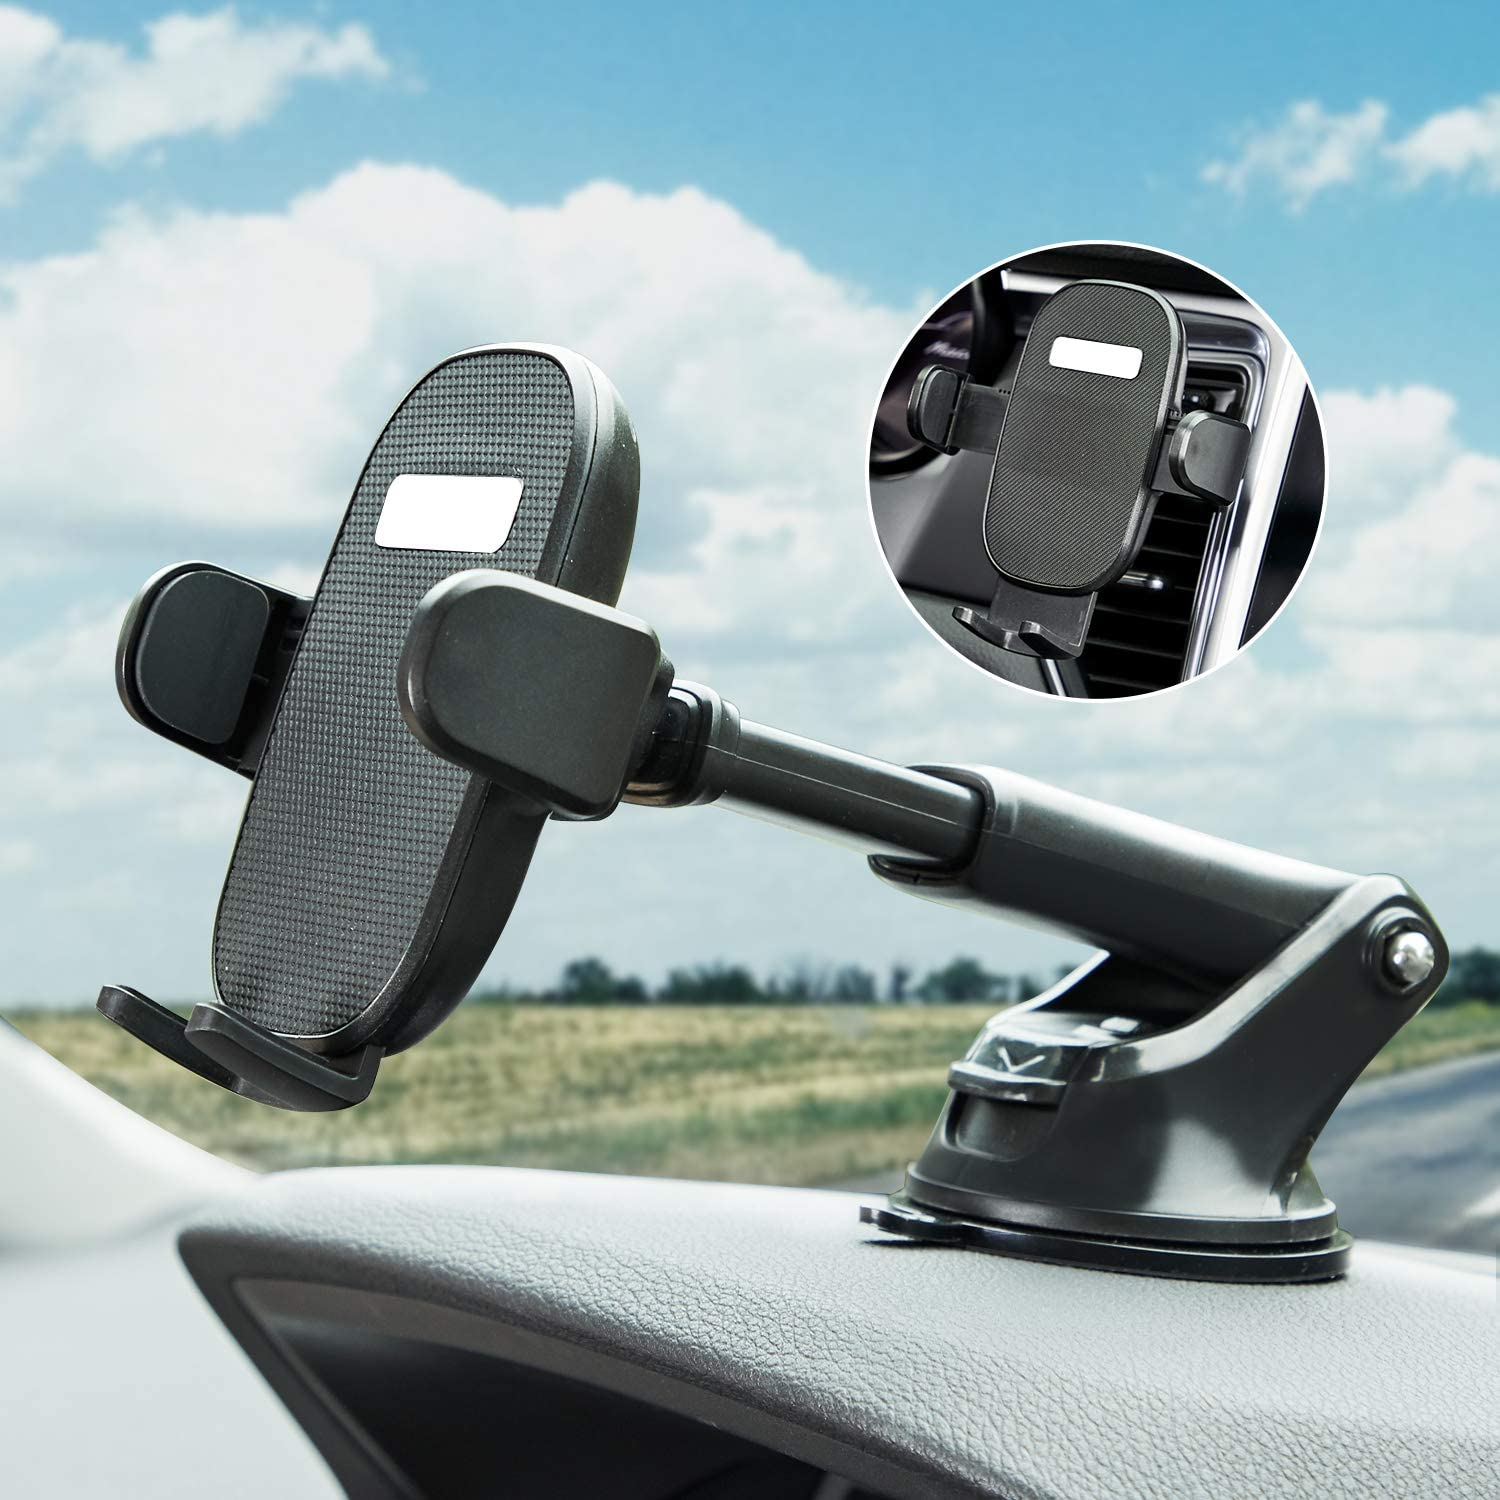 Car Phone Mount OQTIQ Universal Dashboard /& Windshield Suction Cup Car Phone Mount with Washable Strong Sticky Gel Pad and Car Vent Clip